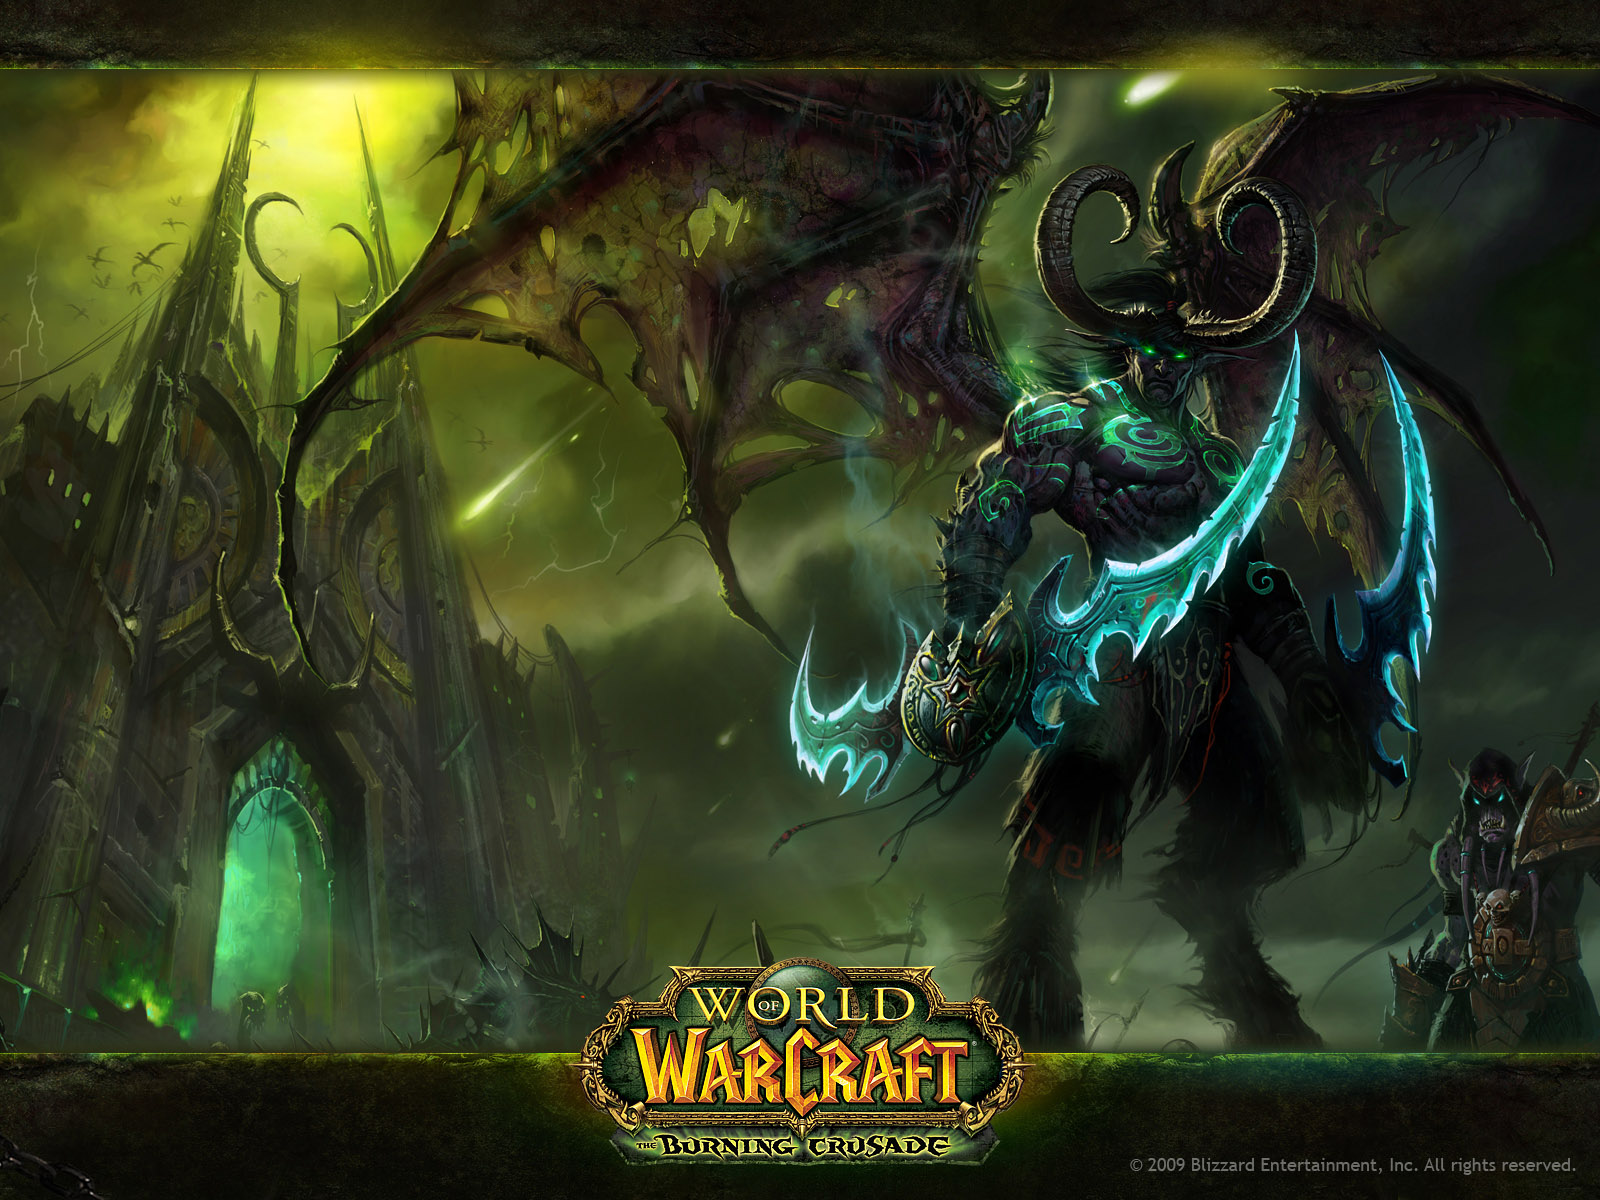 'World of Warcraft' posts loss of 1.3 million subscribers